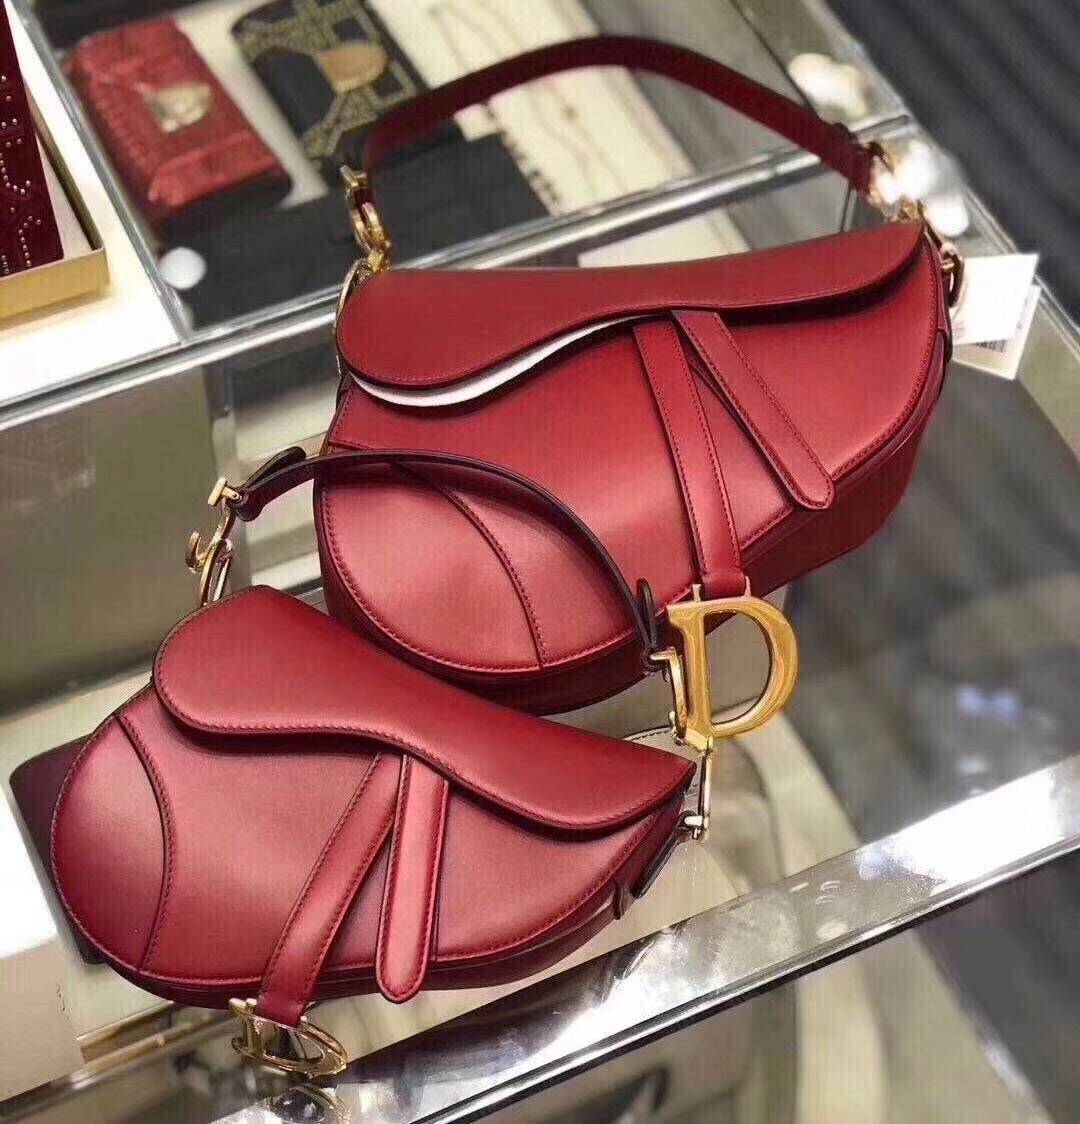 Dior SADDLE BAG IN RED CALFSKIN M0446 red